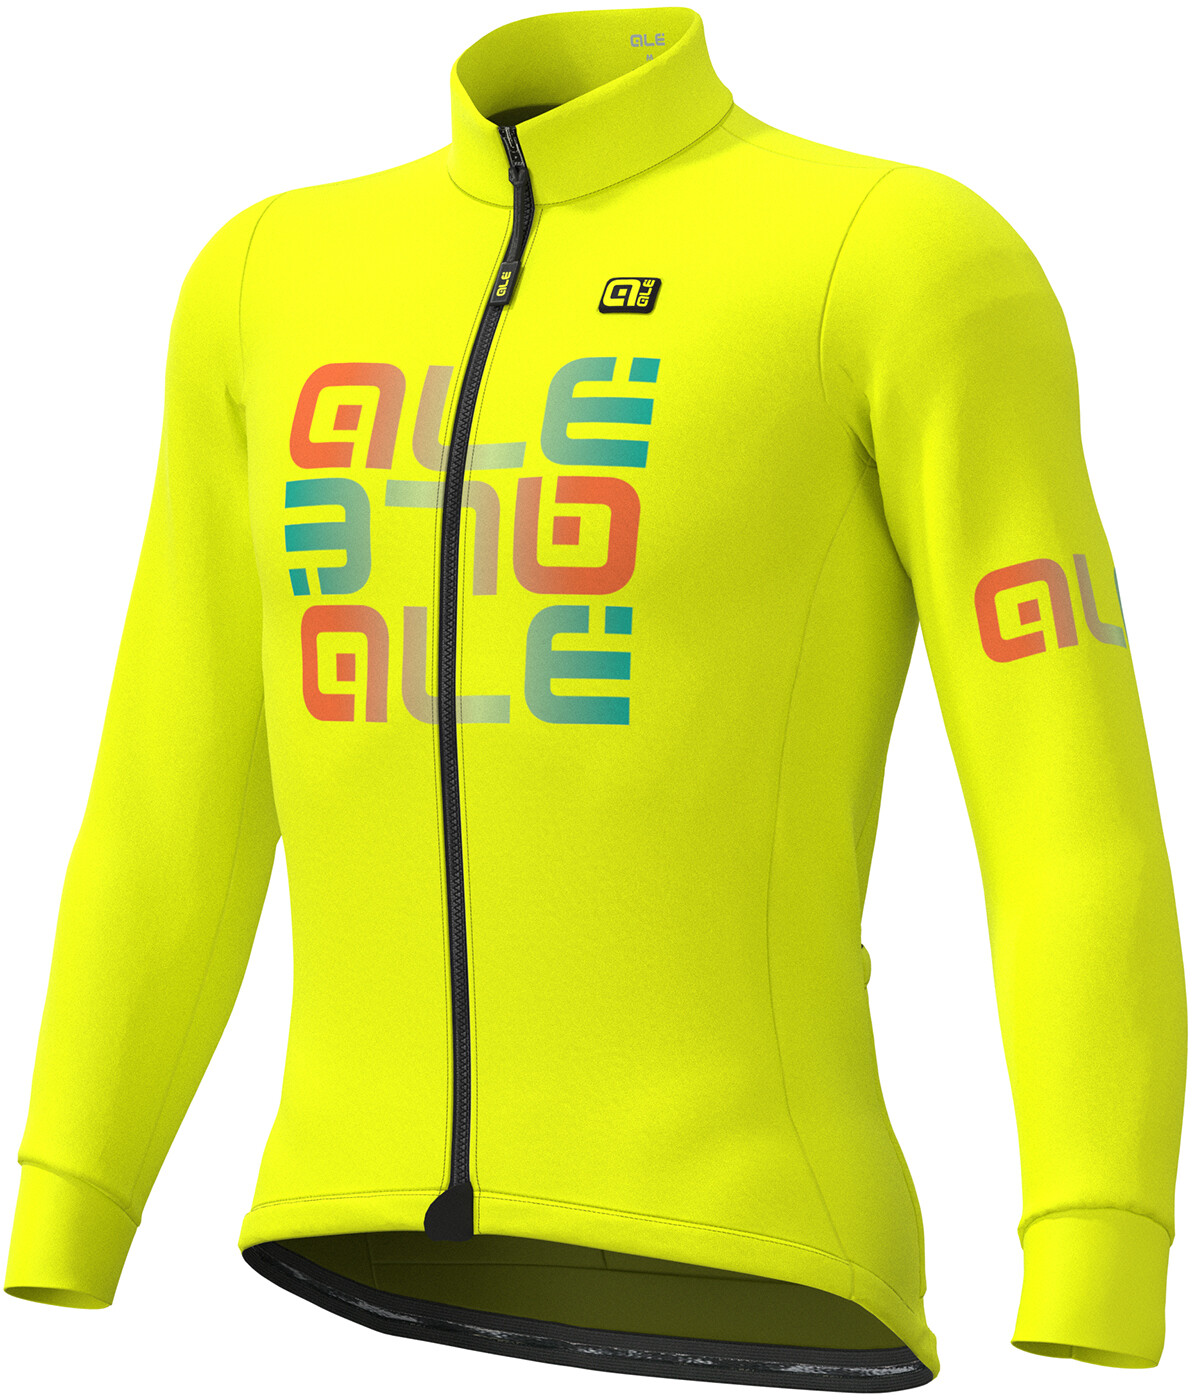 Alé Cycling Solid Mirror Vintertrøje Herrer, fluo yellow (2019) | Jerseys